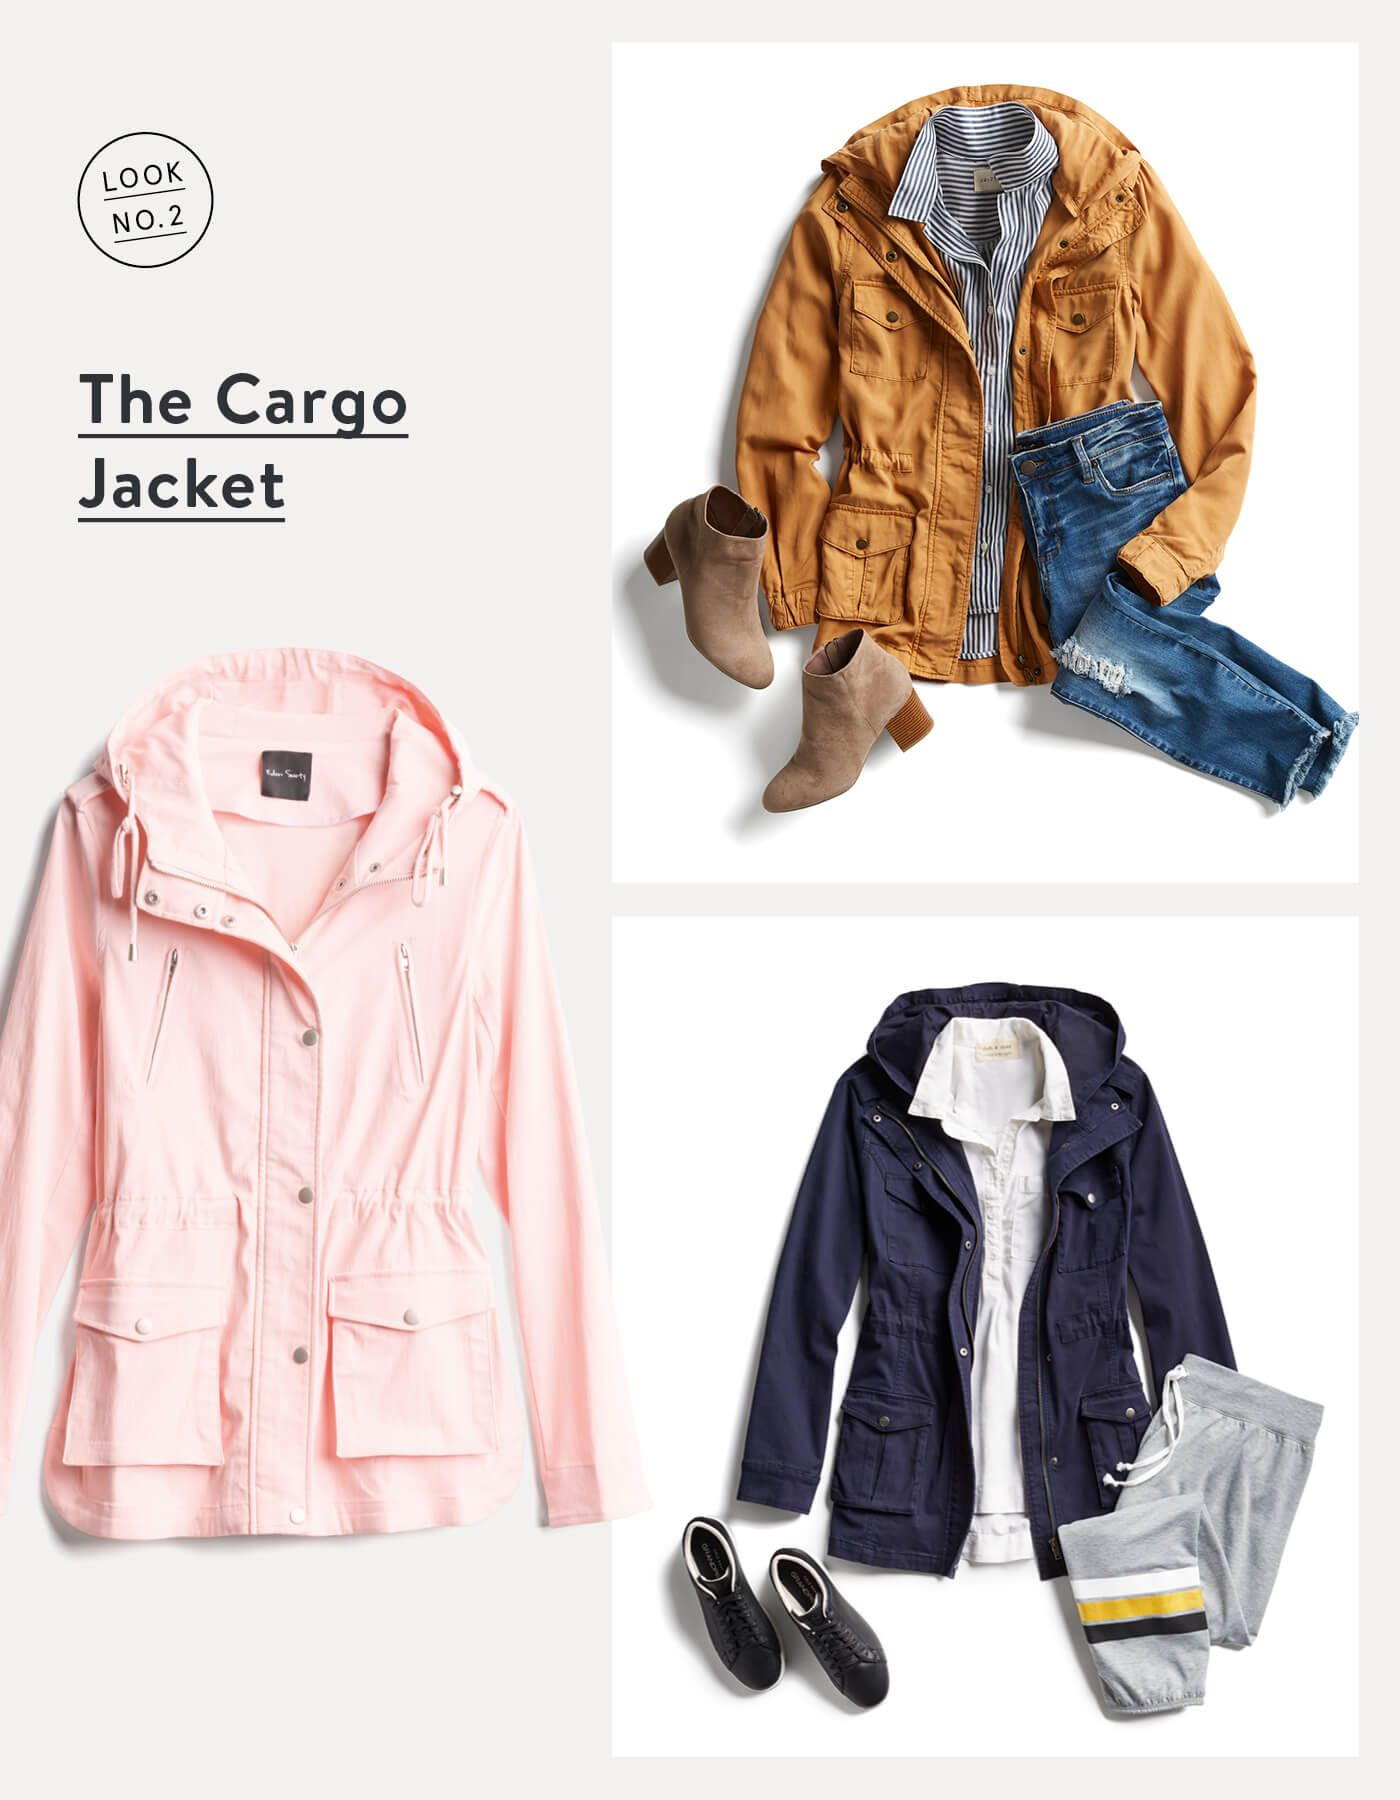 6 Light Jackets To Get Before Spring Arrives Stitch Fix Style Stitch Fix Jacket Light Jacket Fashion [ 1800 x 1400 Pixel ]